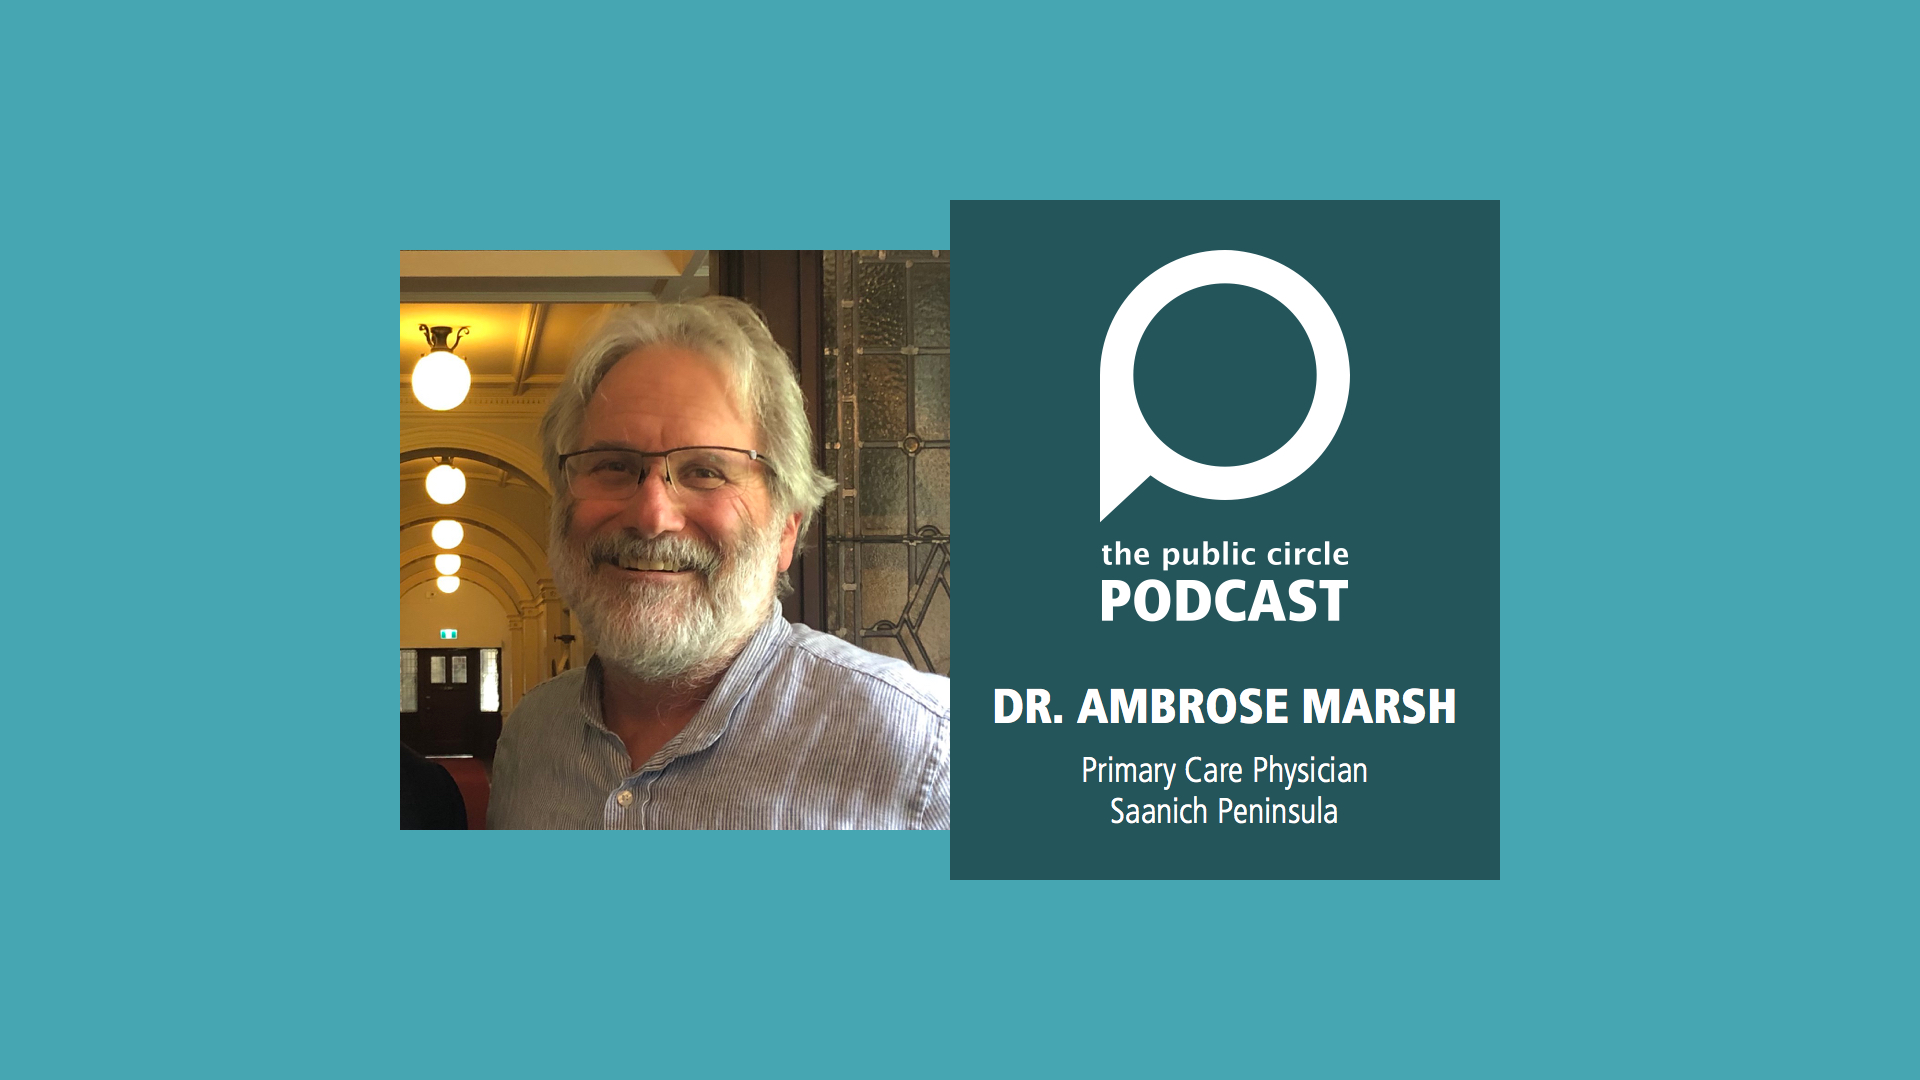 PODCAST: Dr. Ambrose Marsh – Primary Care Physician